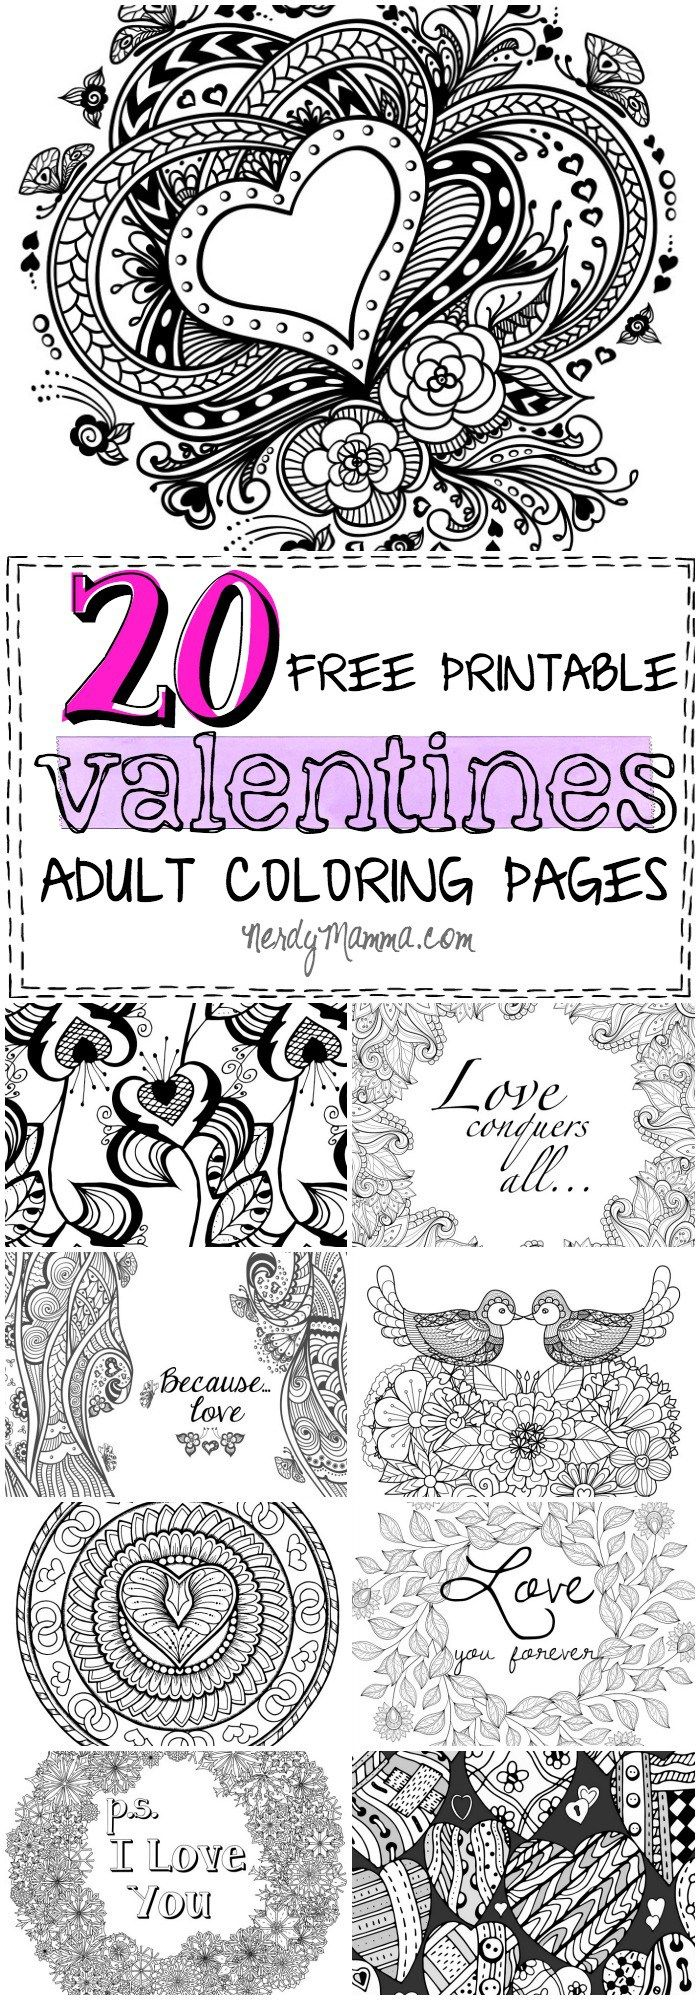 Free printable coloring pages for valentines day - 20 Free Printable Valentines Adult Coloring Pages